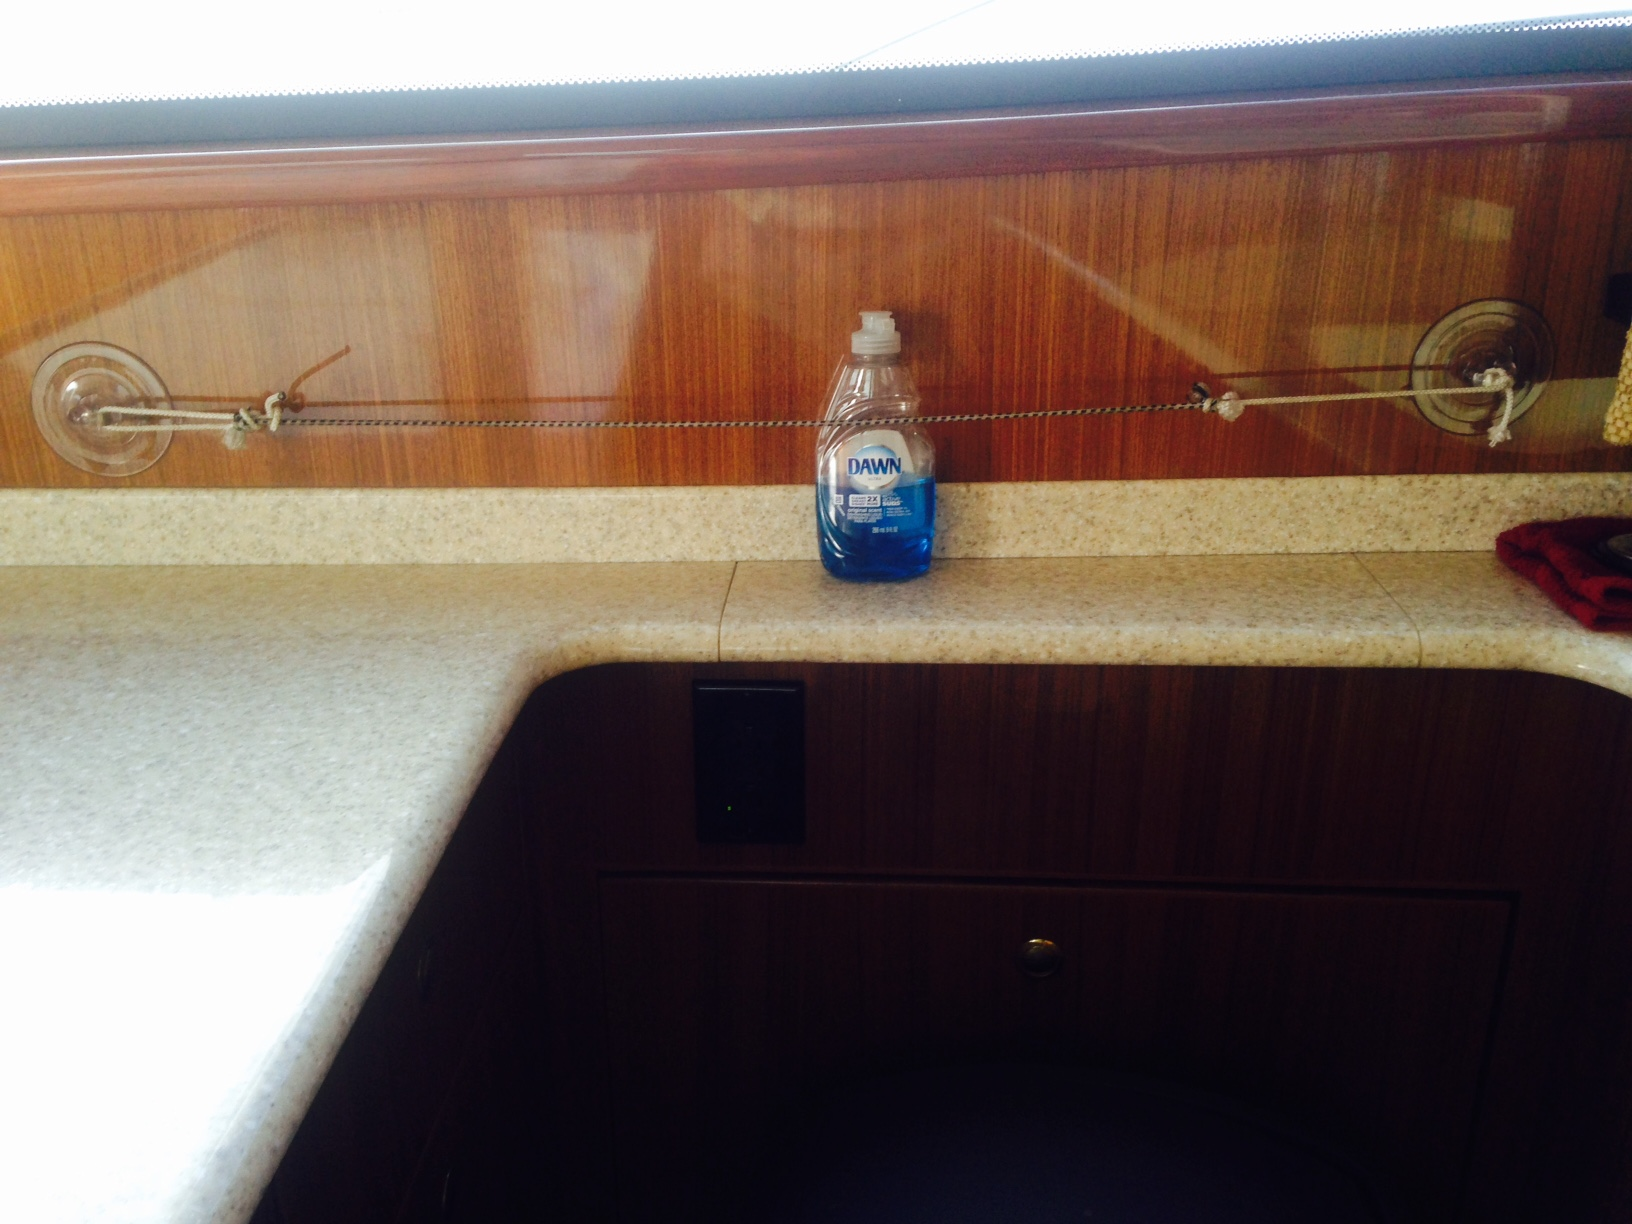 suction cup holding dishwashing detergent in a boats galley